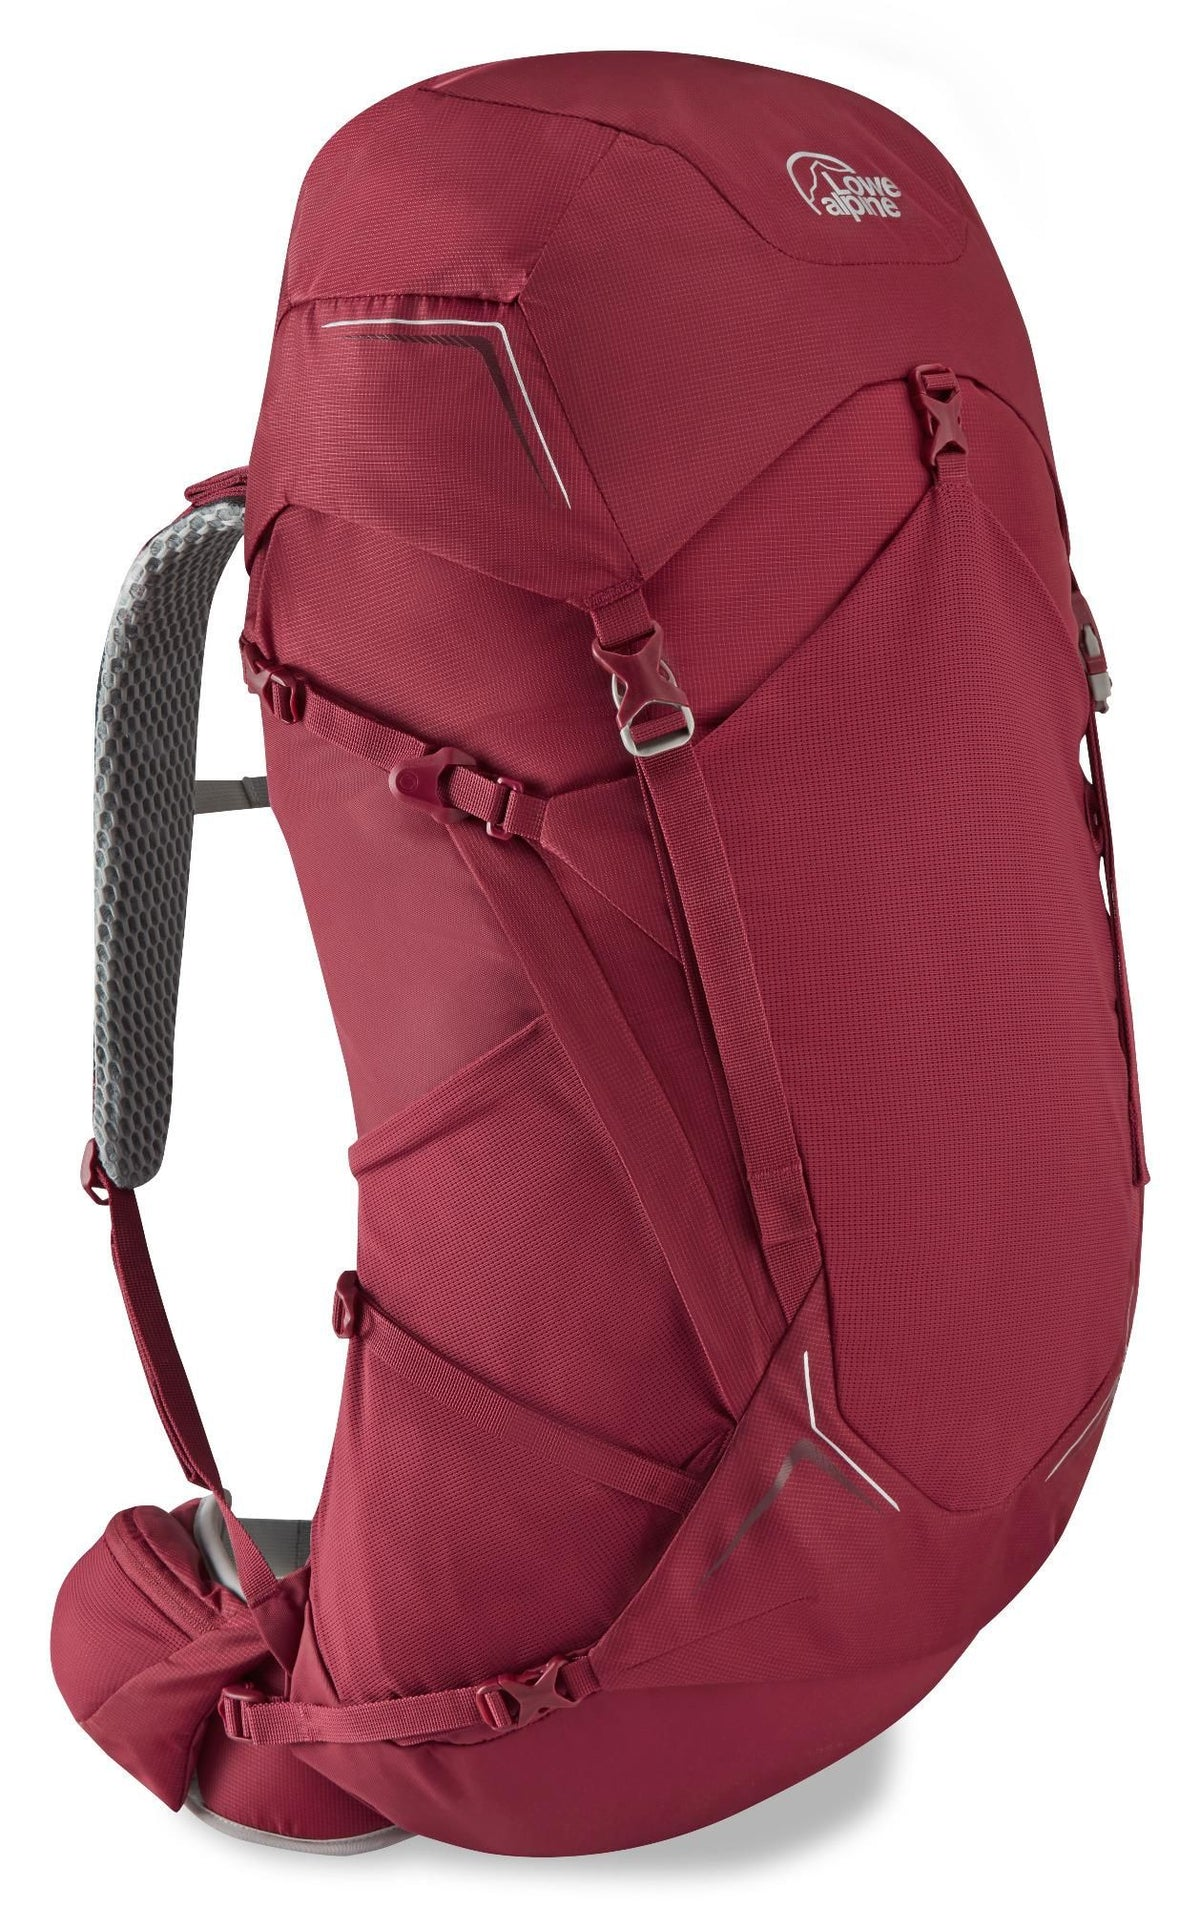 Lowe Alpine-AirZone Trek ND 43-50 (Design for Women)-Backpacking Pack-Raspberry-Gearaholic.com.sg